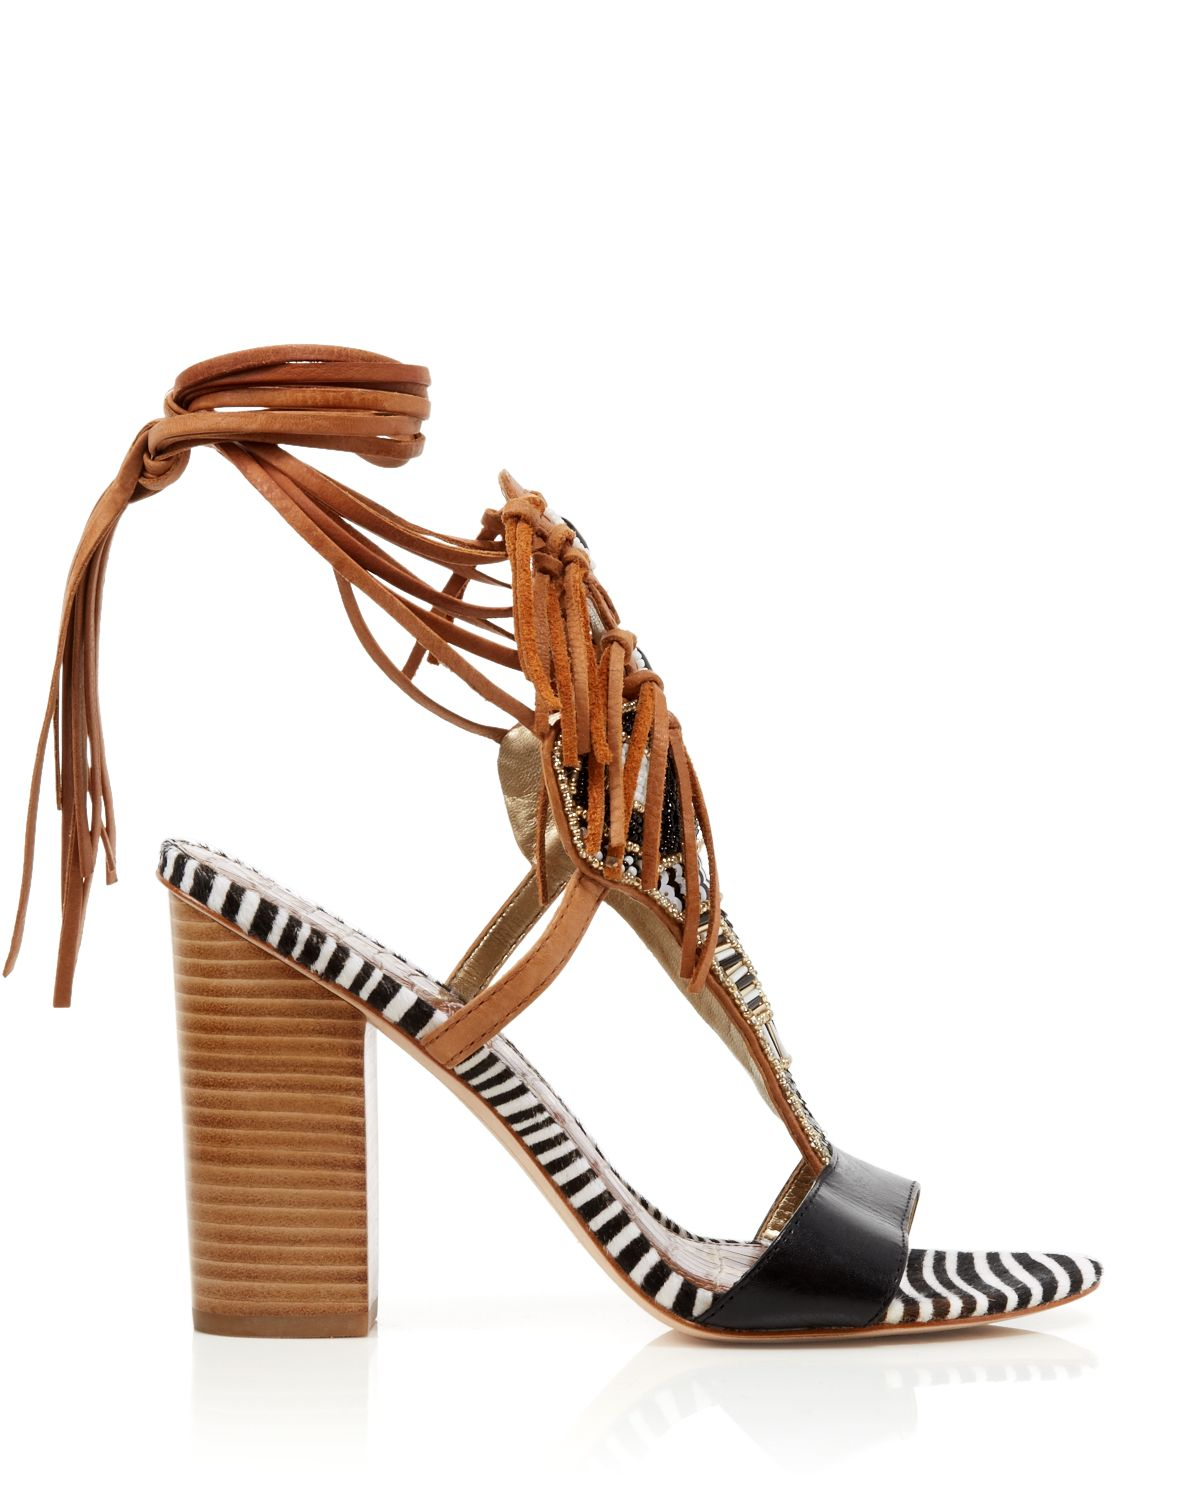 48c215148 Sam Edelman Sandals - Yates Tribal Beaded Wraparound High Heel in ...